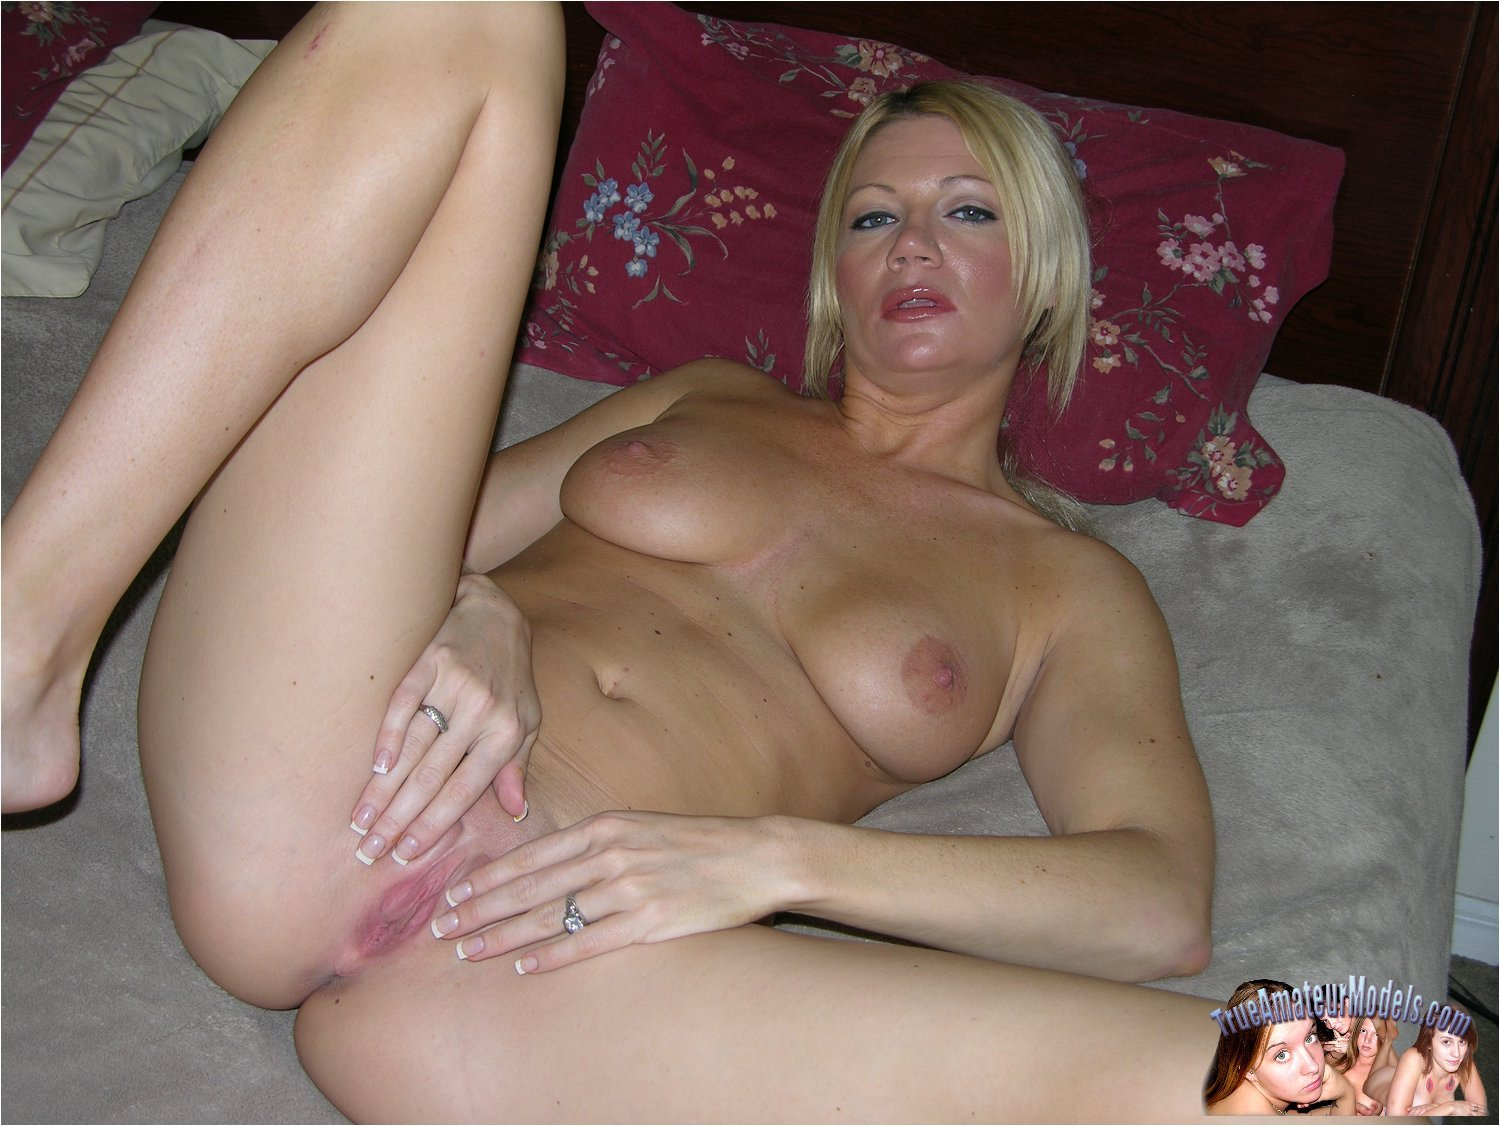 mobile adult video chat add photo